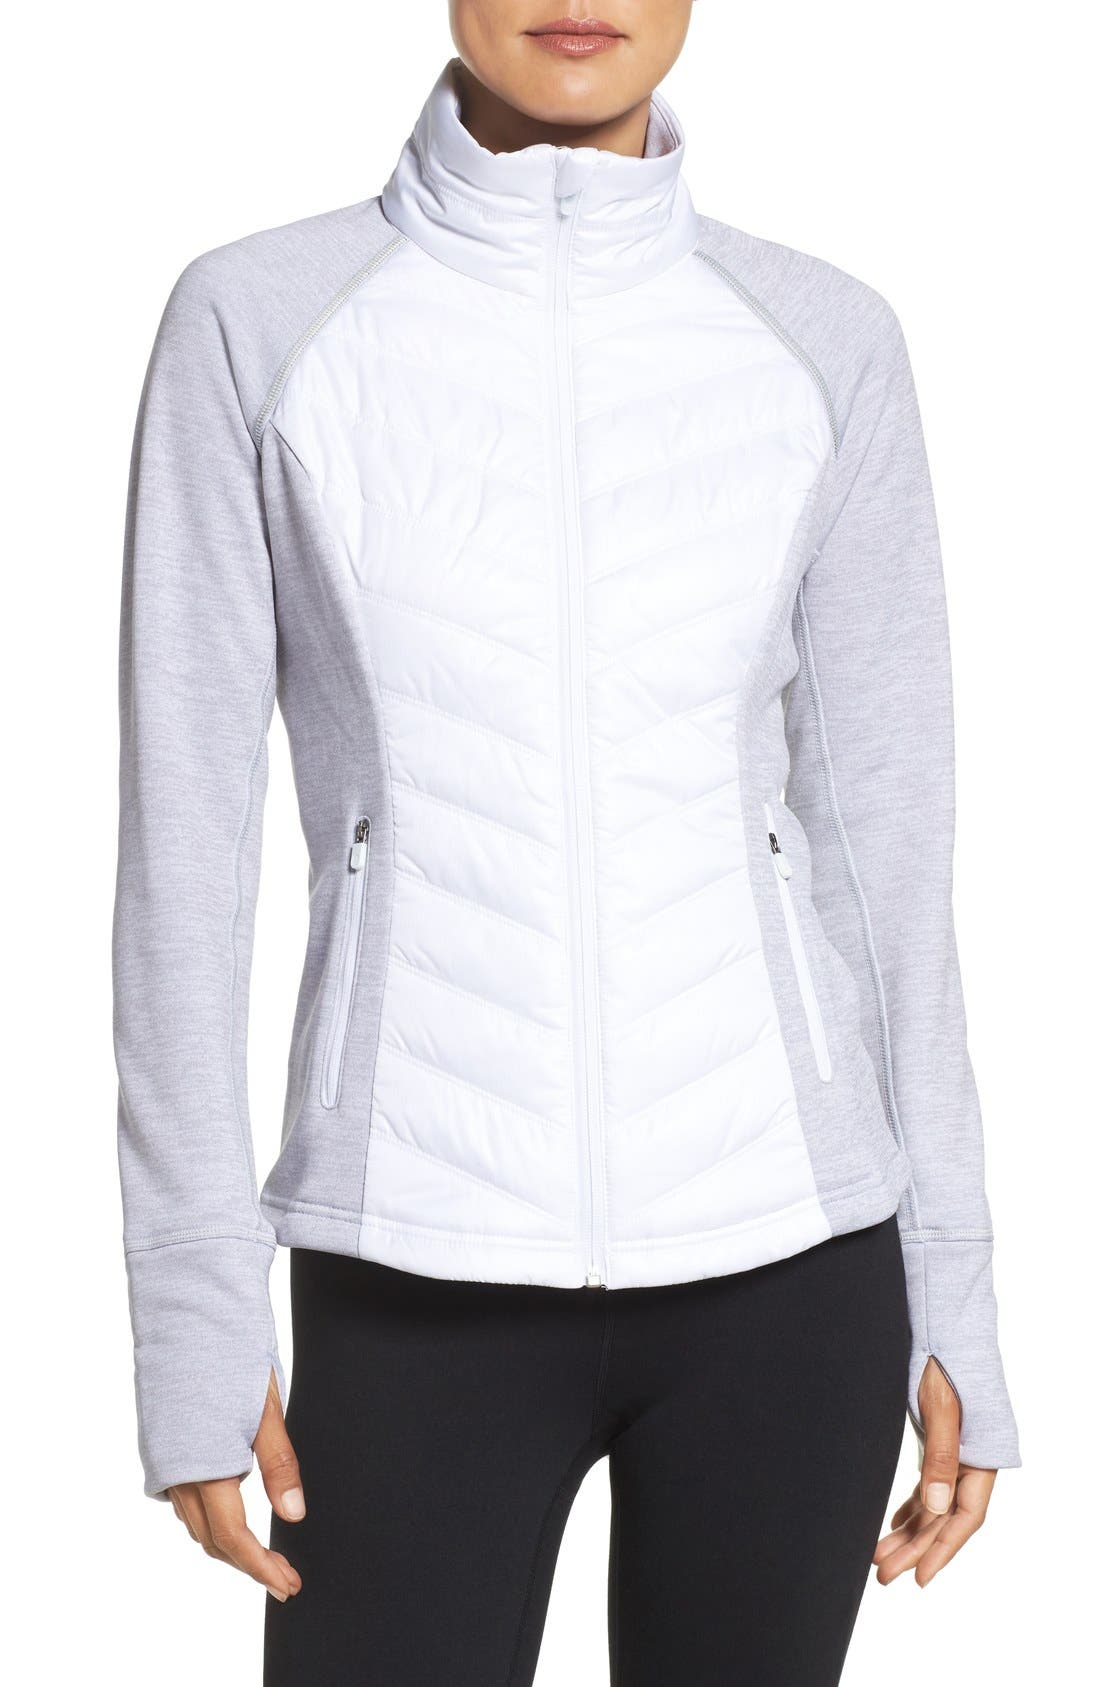 Zelfusion Reflective Quilted Jacket,                             Main thumbnail 8, color,